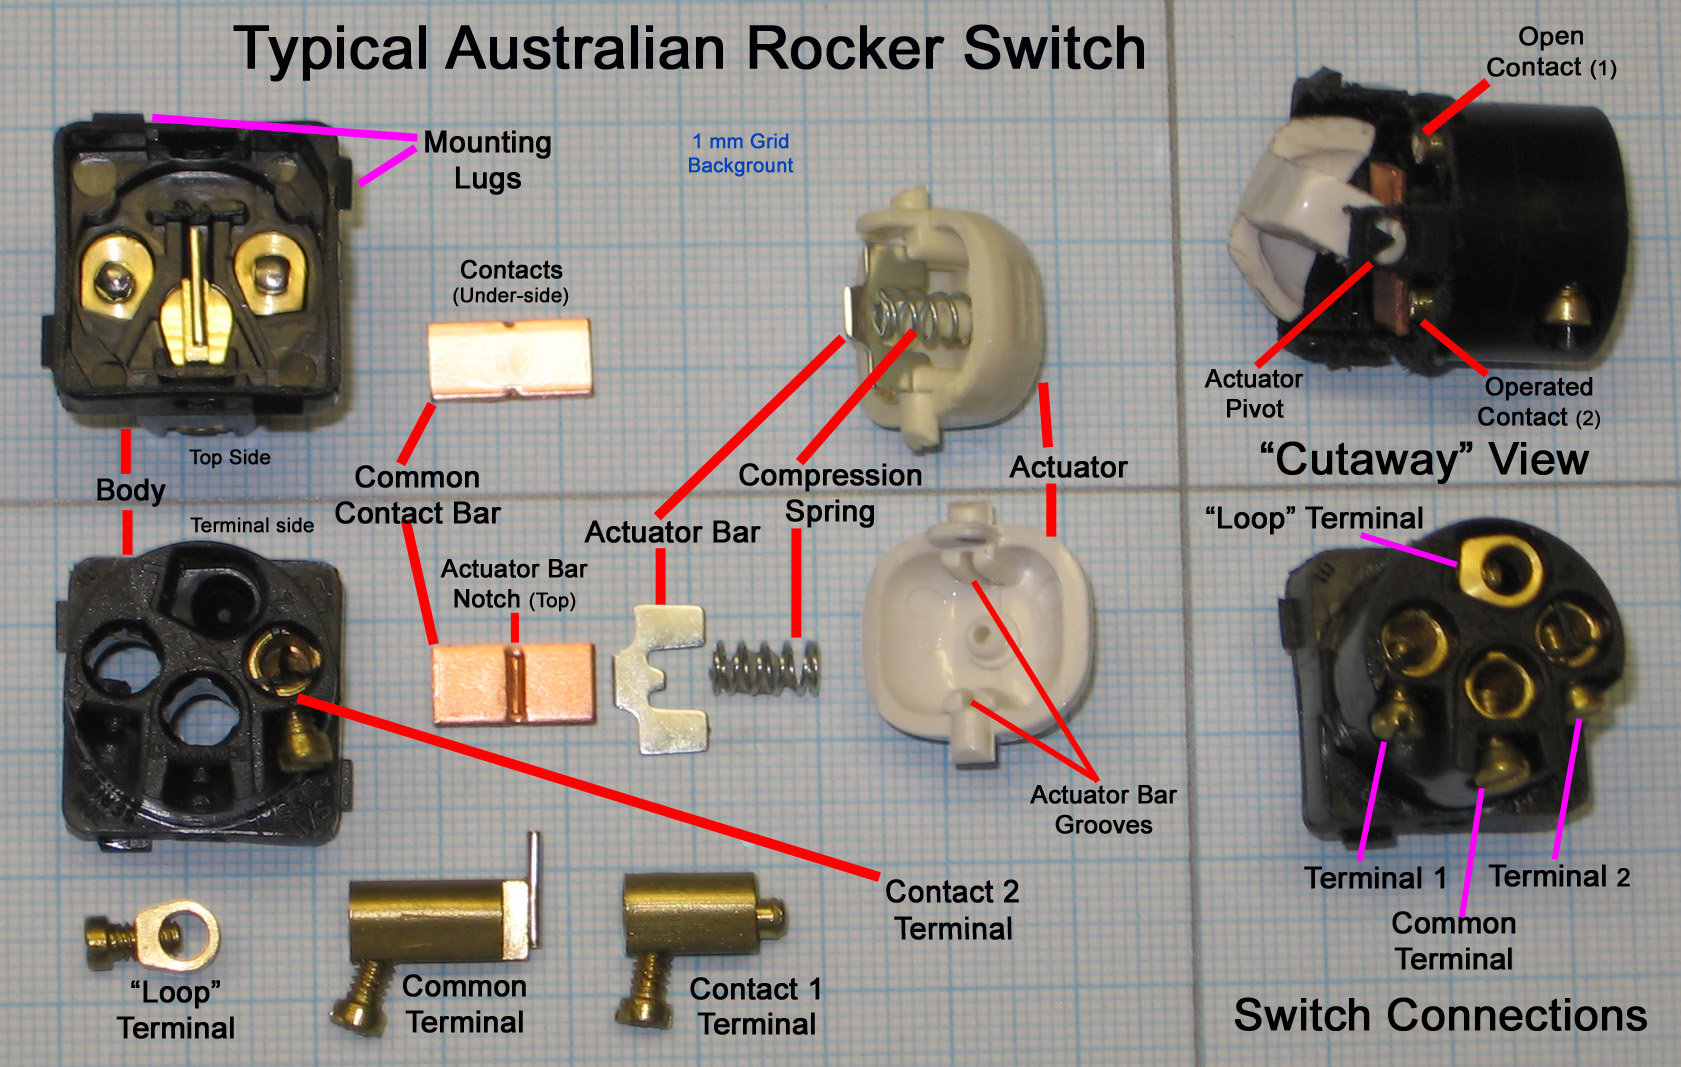 Australian Electrical Socket Outlet Not Lossing Wiring Diagram Power Australia Images Gallery